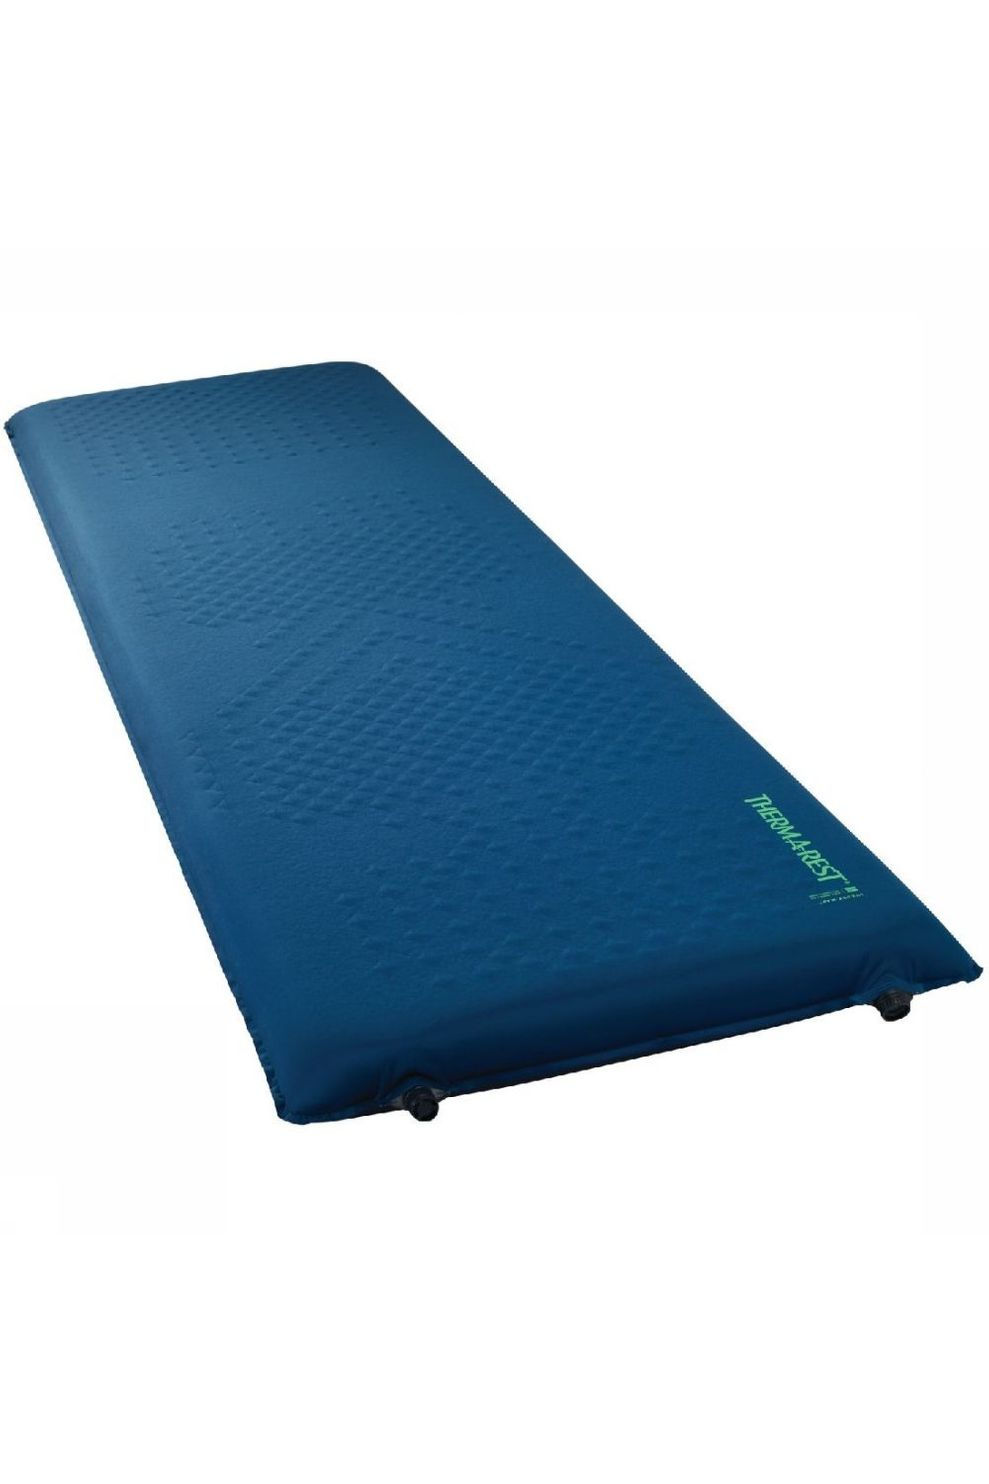 Therm-a-Rest Slaapmat Luxury Map Large - Blauw